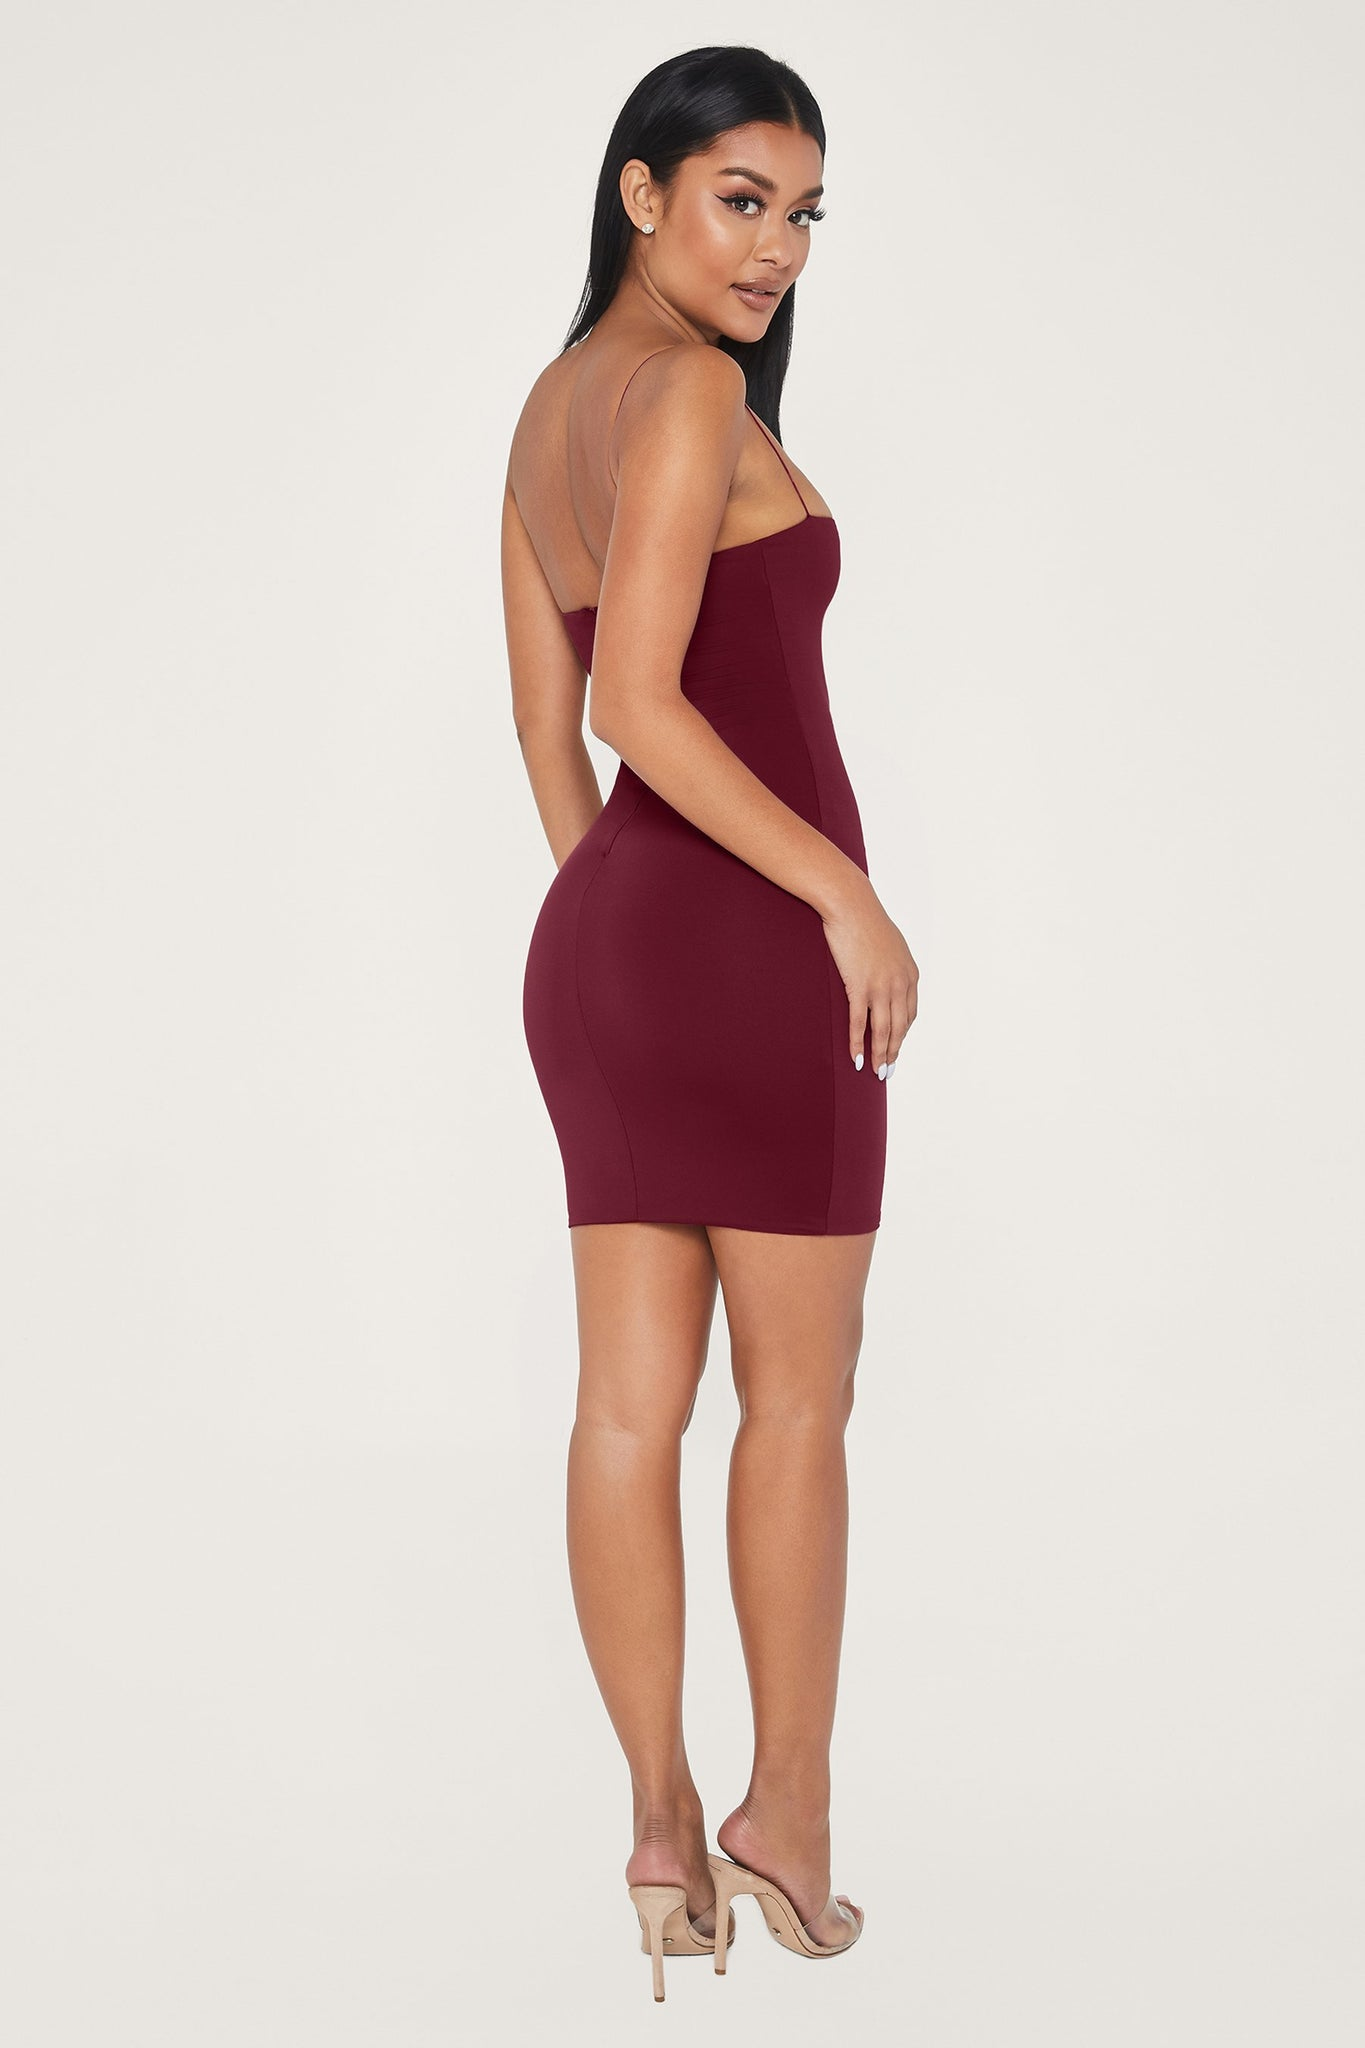 Mia Thin Strap Bodycon Mini Dress - Burgundy - MESHKI